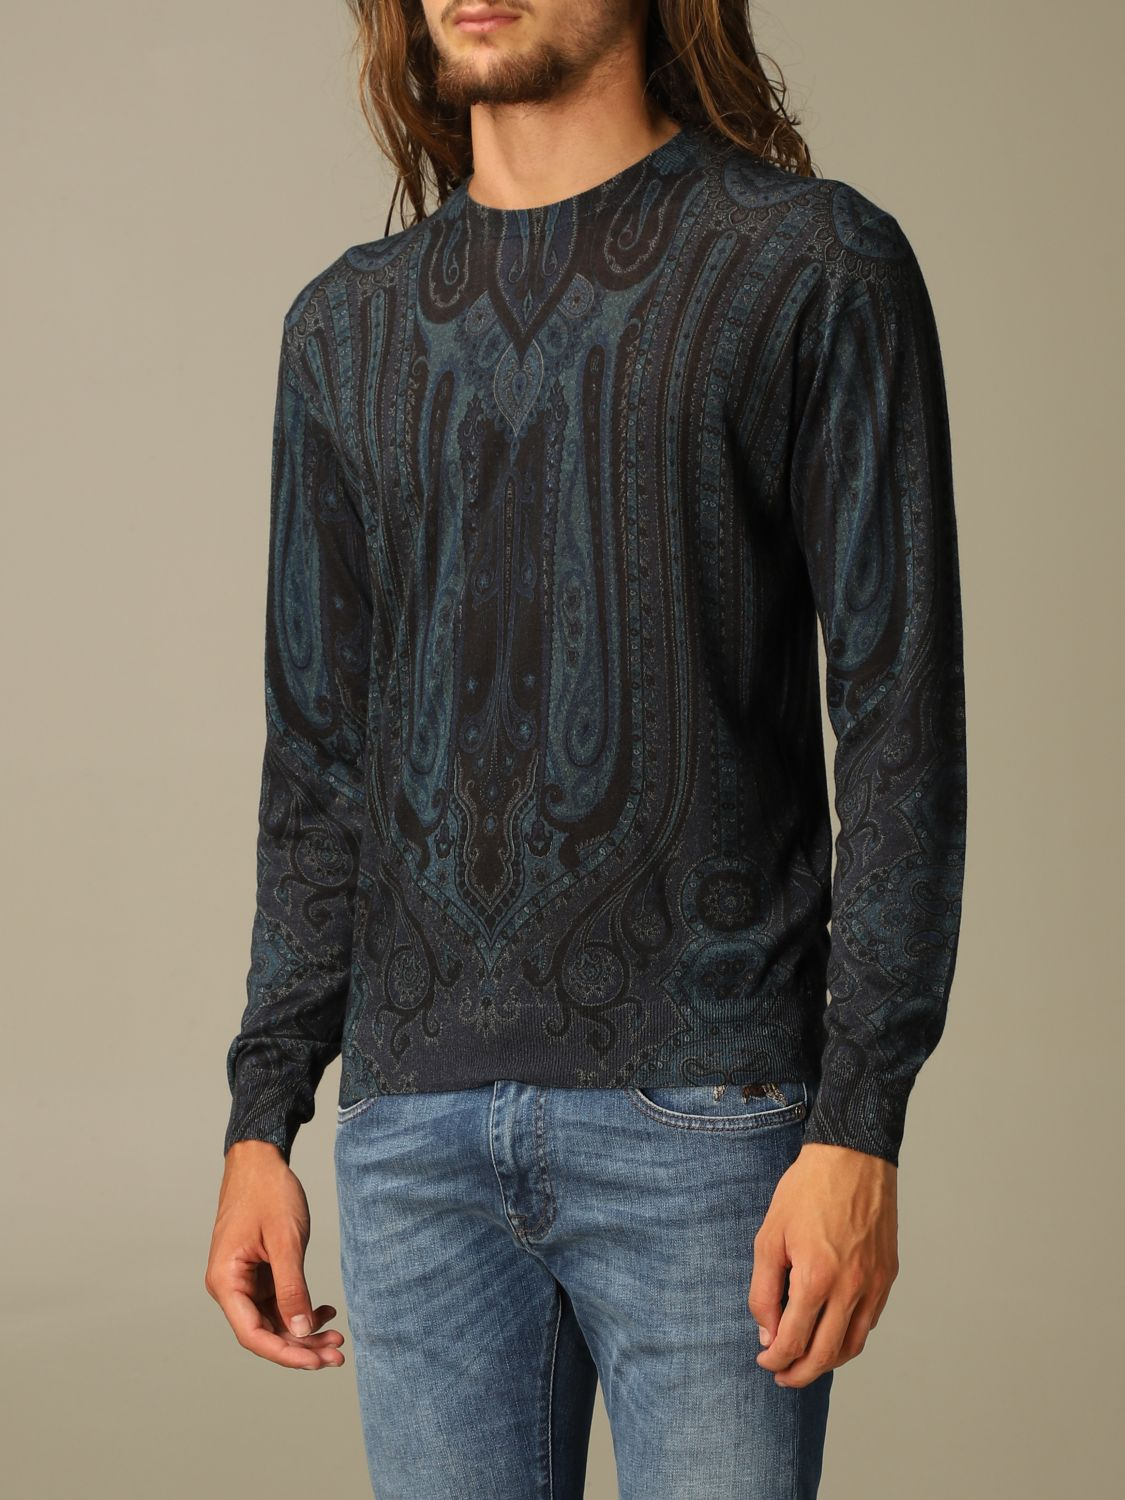 Sweater Etro: Etro sweater in silk and paisley chasmere blue 4